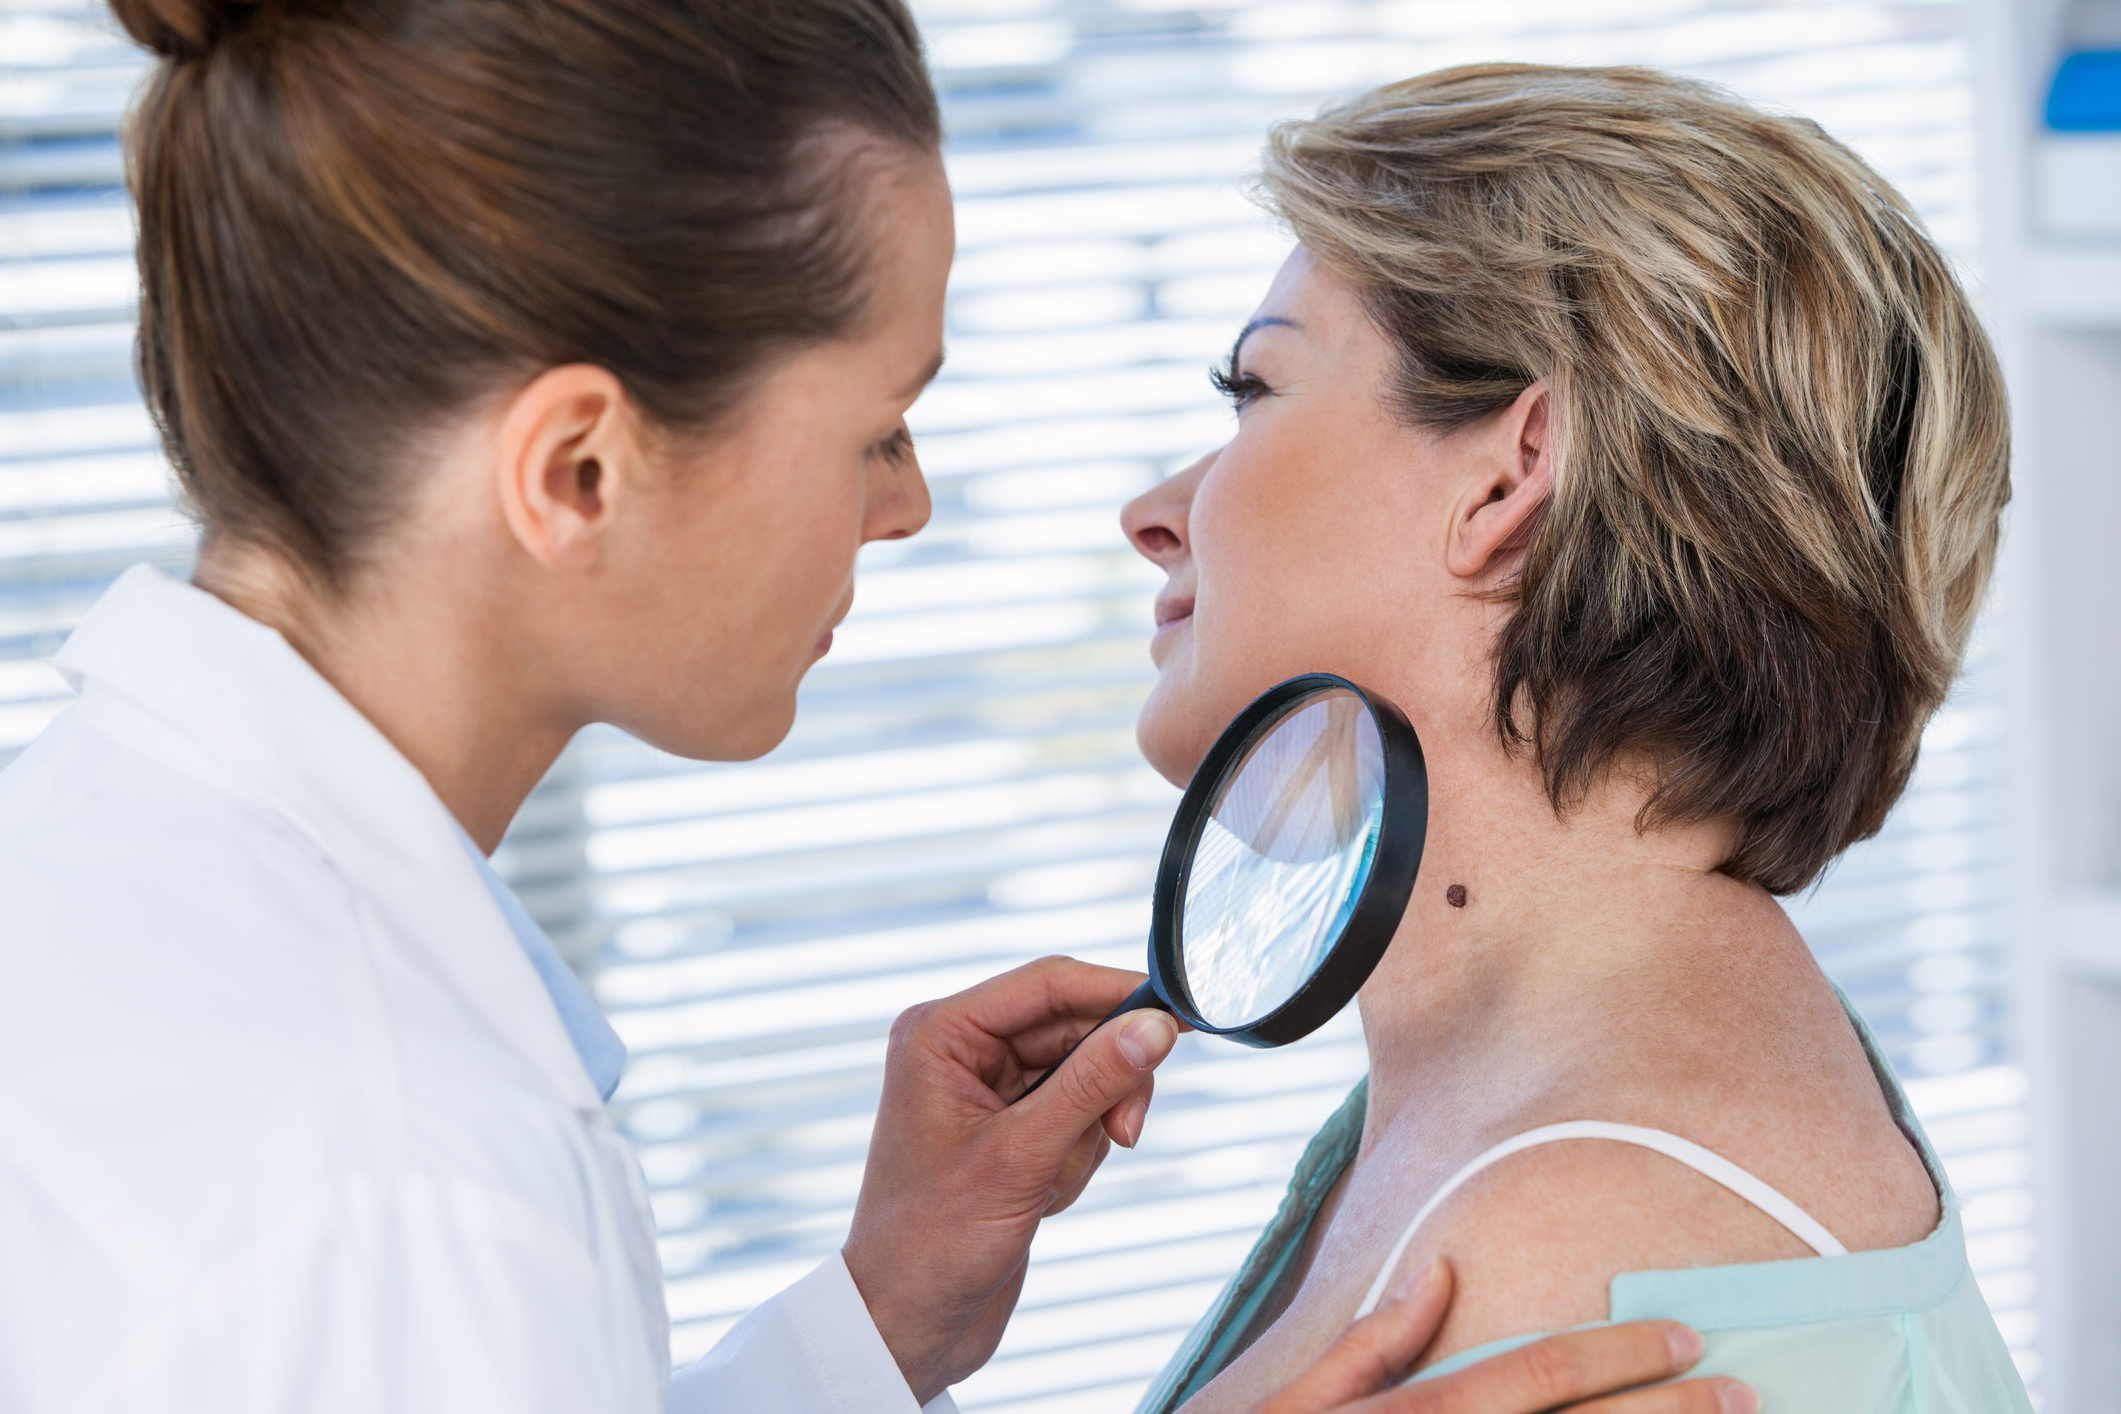 When Should You Visit A Dermatologist?